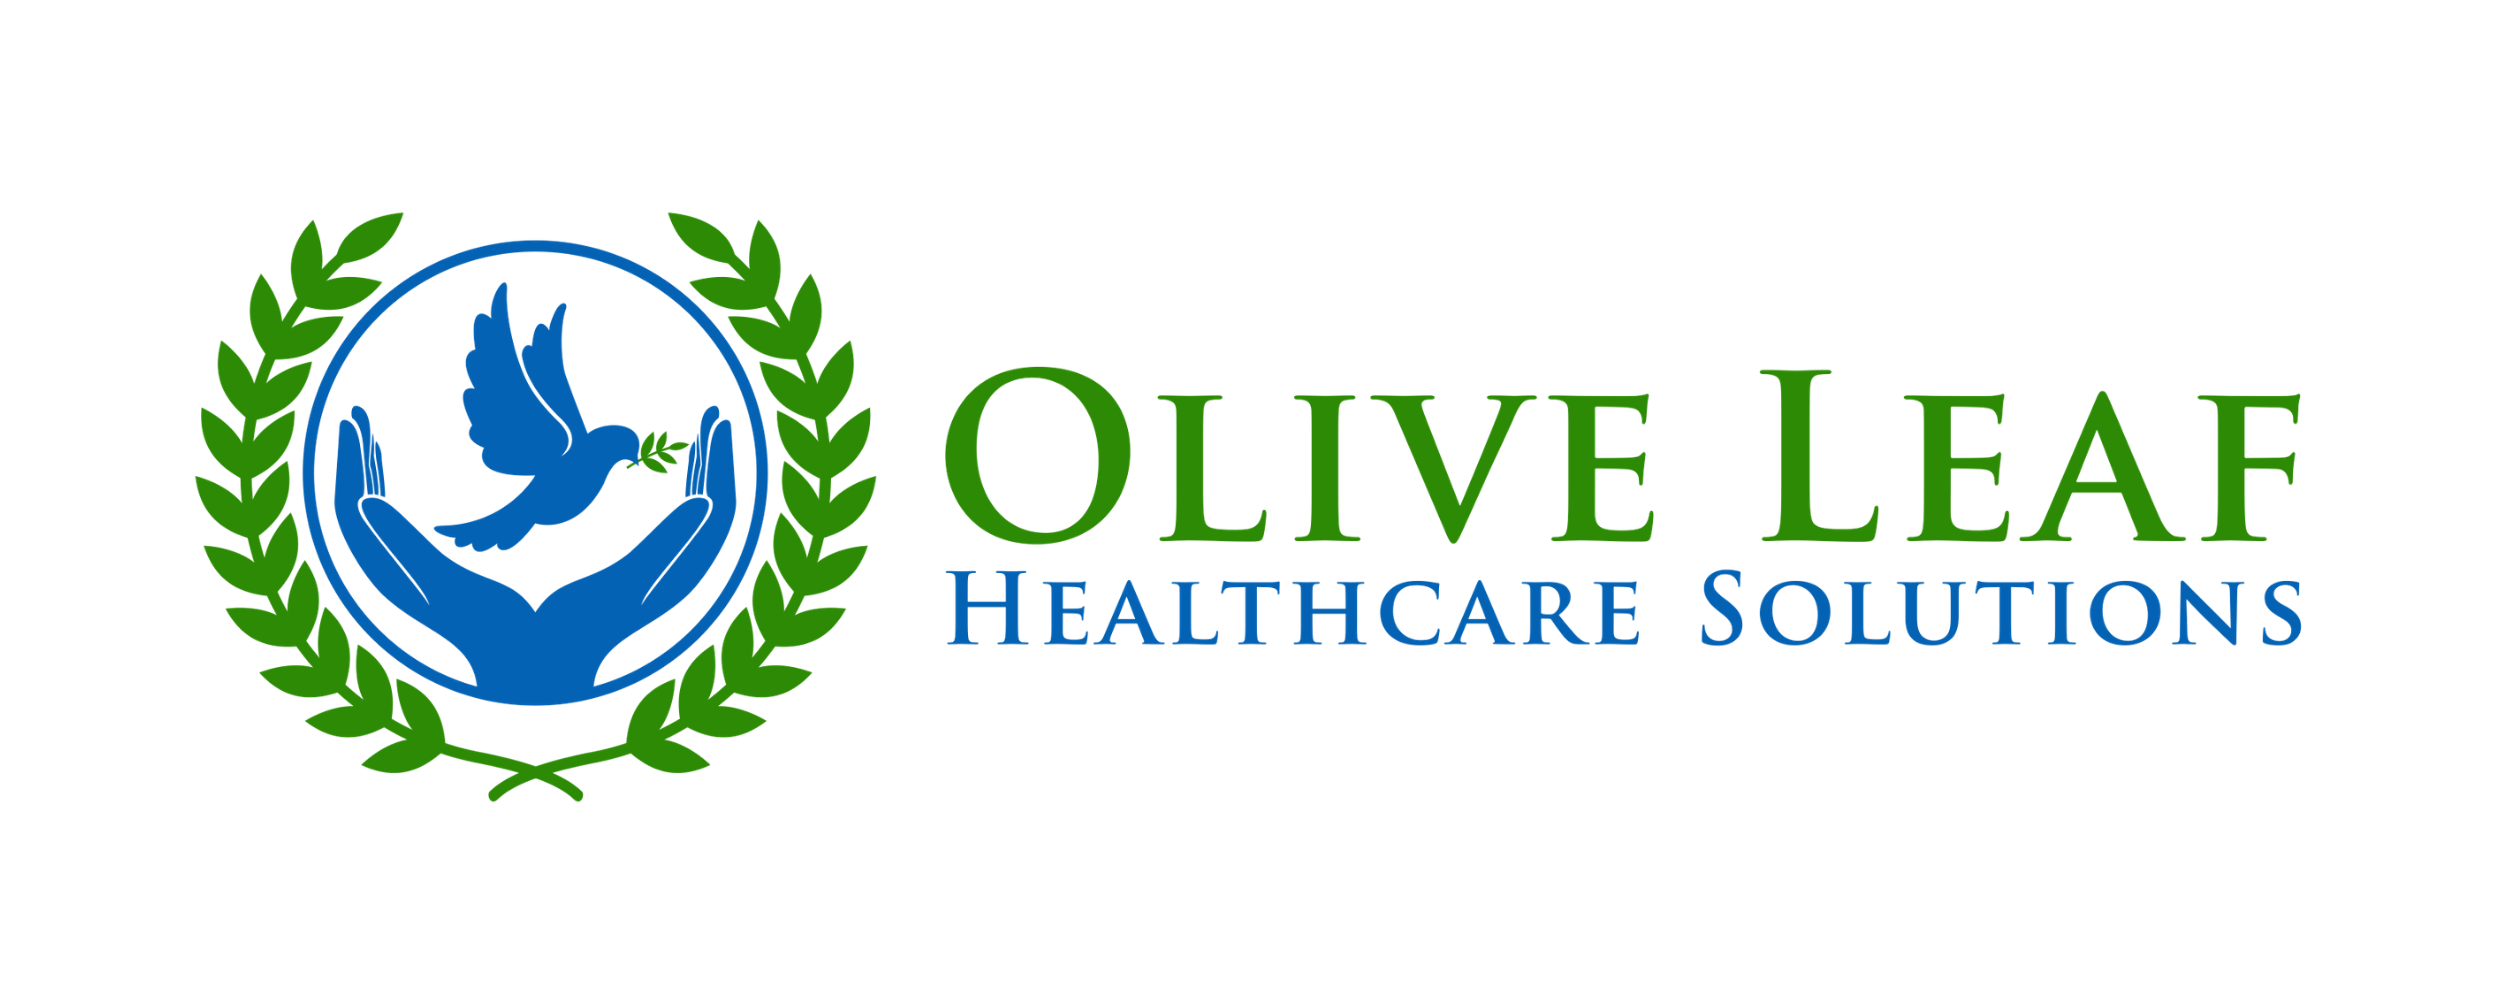 Olive Leaf Healthcare